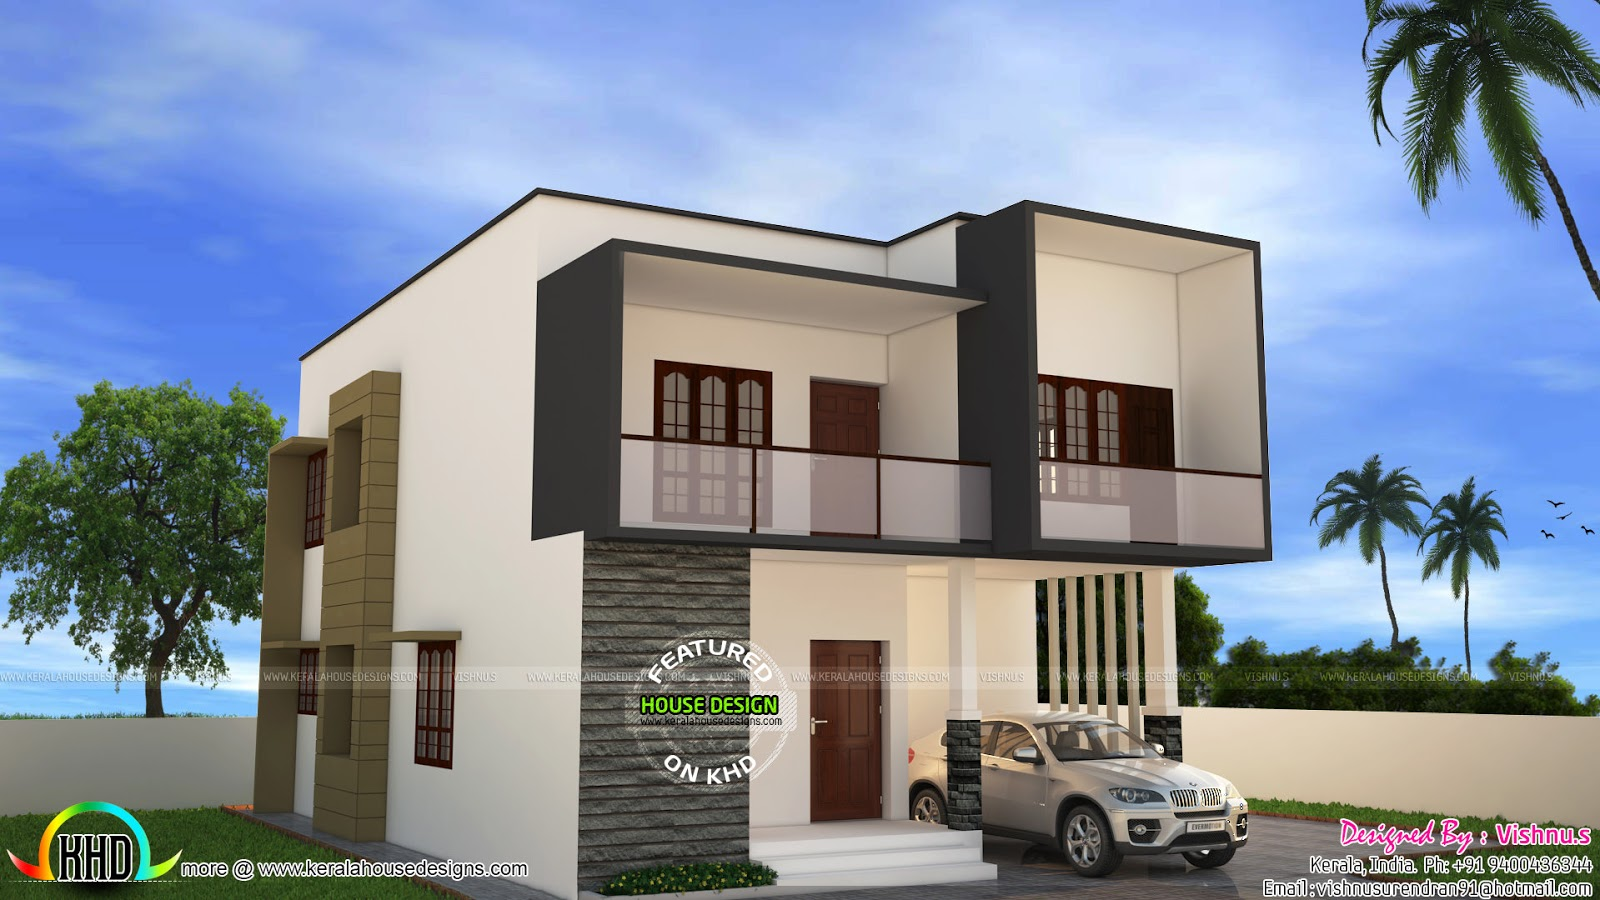 Simple modern house by vishnu s home design decor for Simple modern house plans